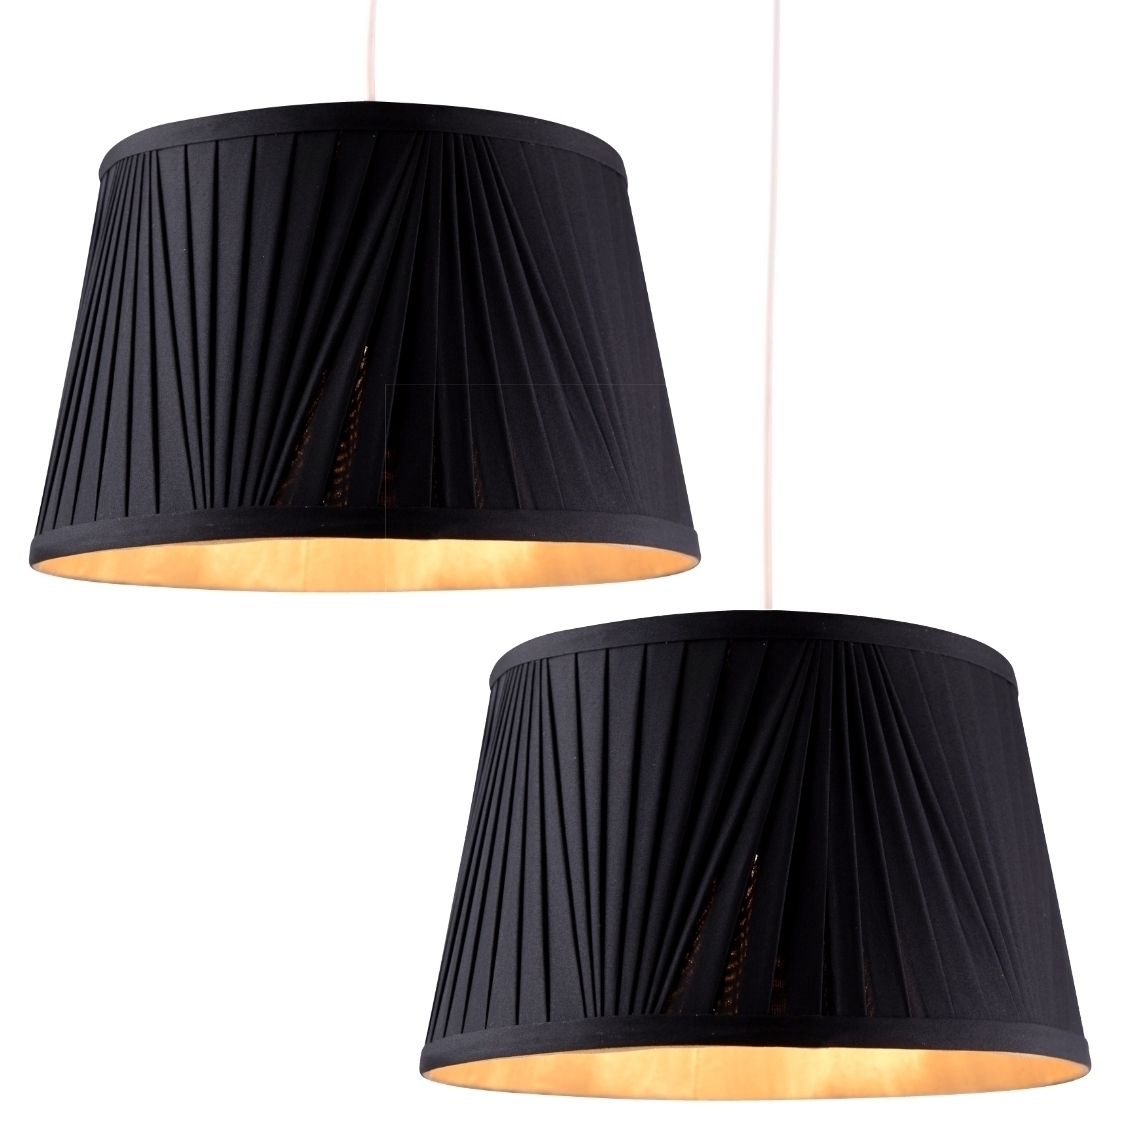 """ENYA BOX PLEAT 10/"""" SHADE IN LIGHT CREAM COLOUR FOR TABLE LAMP OR CEILING"""